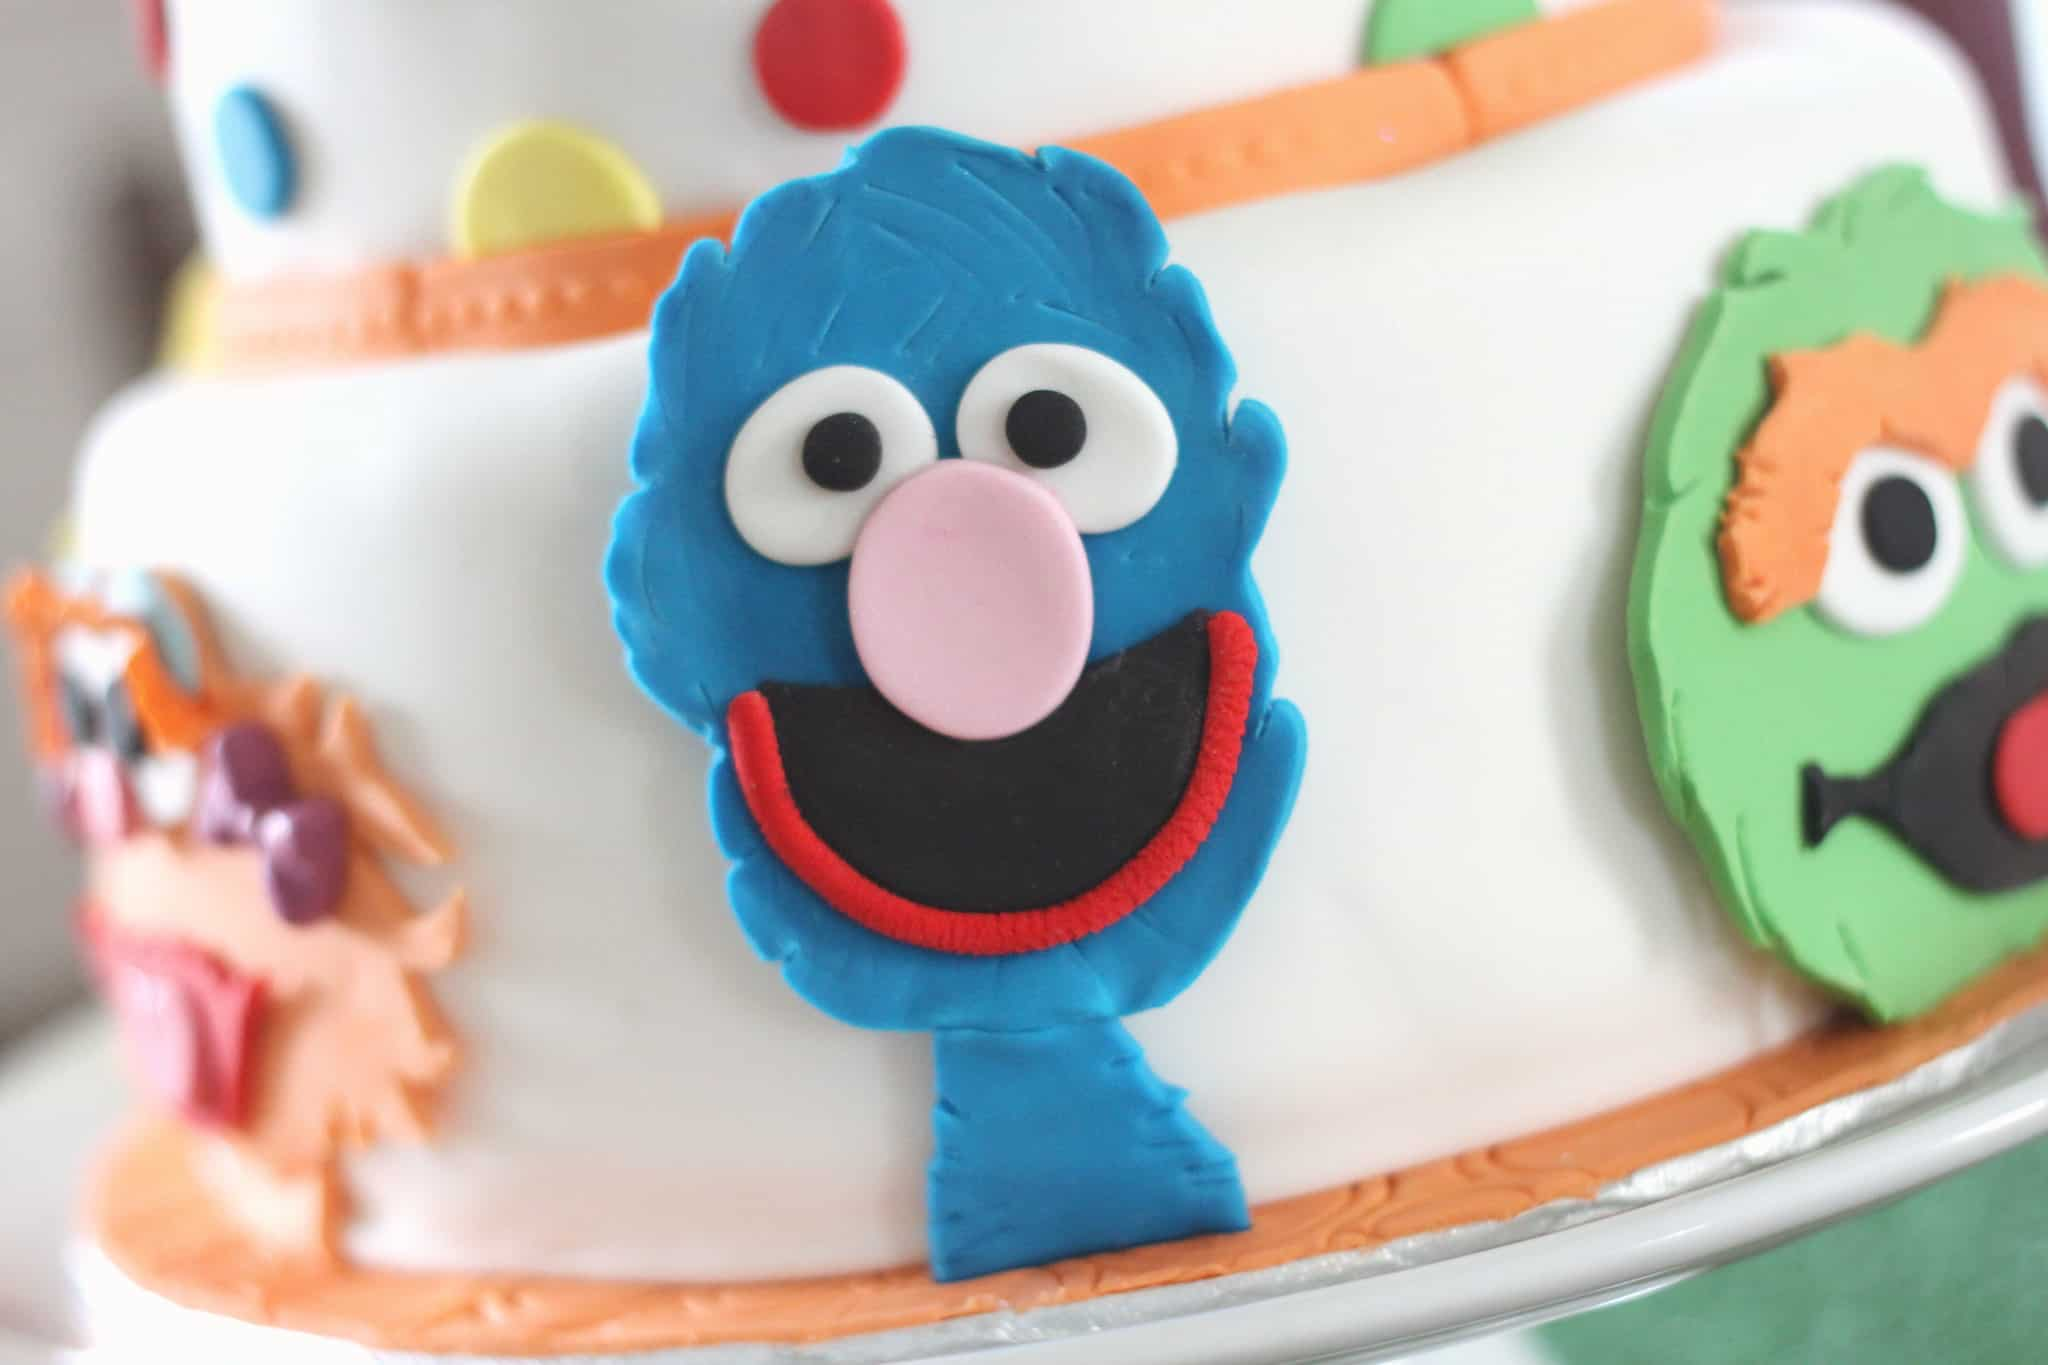 Some of the Cutest Sesame Street Cakes You'll Ever See